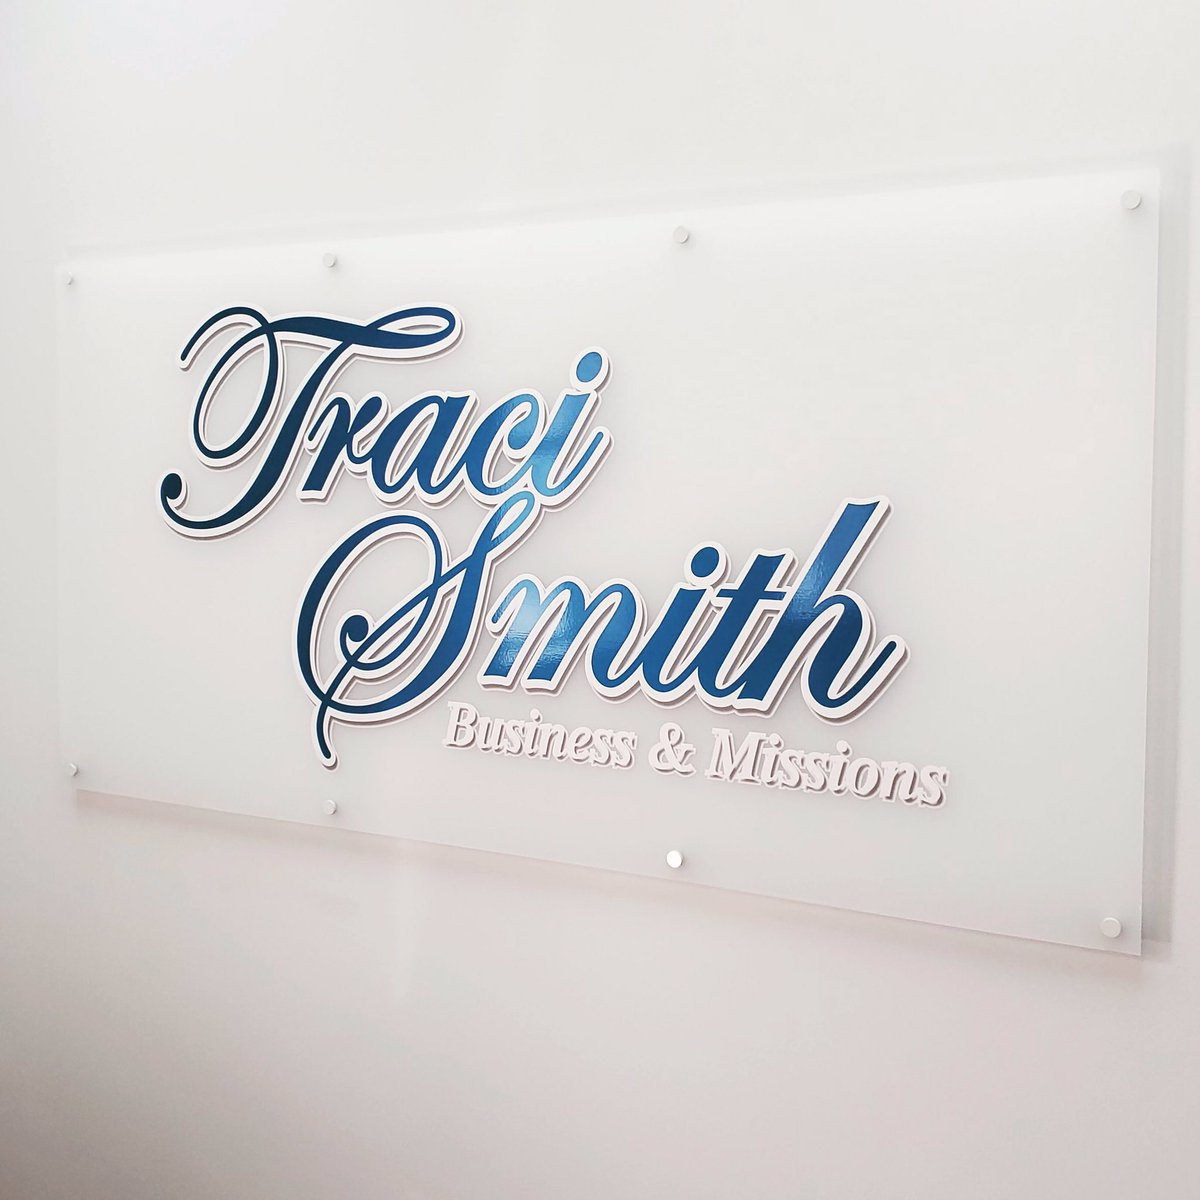 Make your business's walls pop with your logo on frosted glass!  #fastsignsdidit #fastsigns207 #logo #frosted #smallbusiness #branding